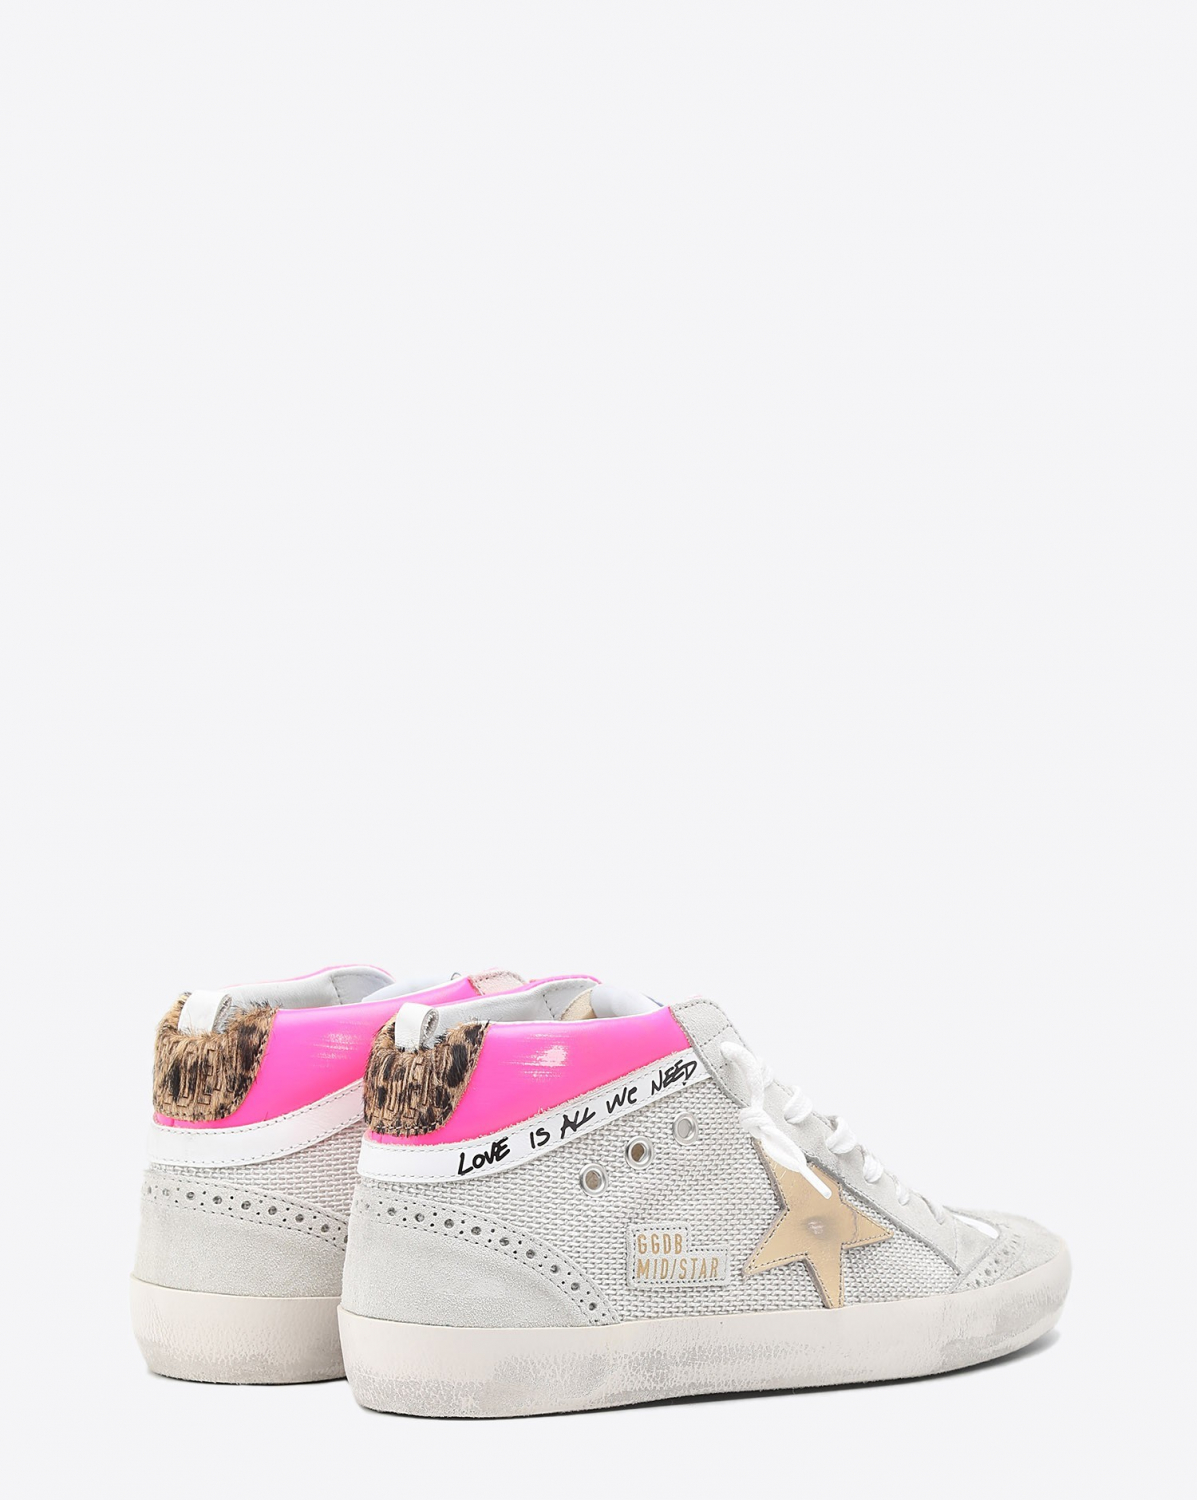 Golden Goose Woman Collection Mid Star - Fuchsia Gold Beige Brown 80807